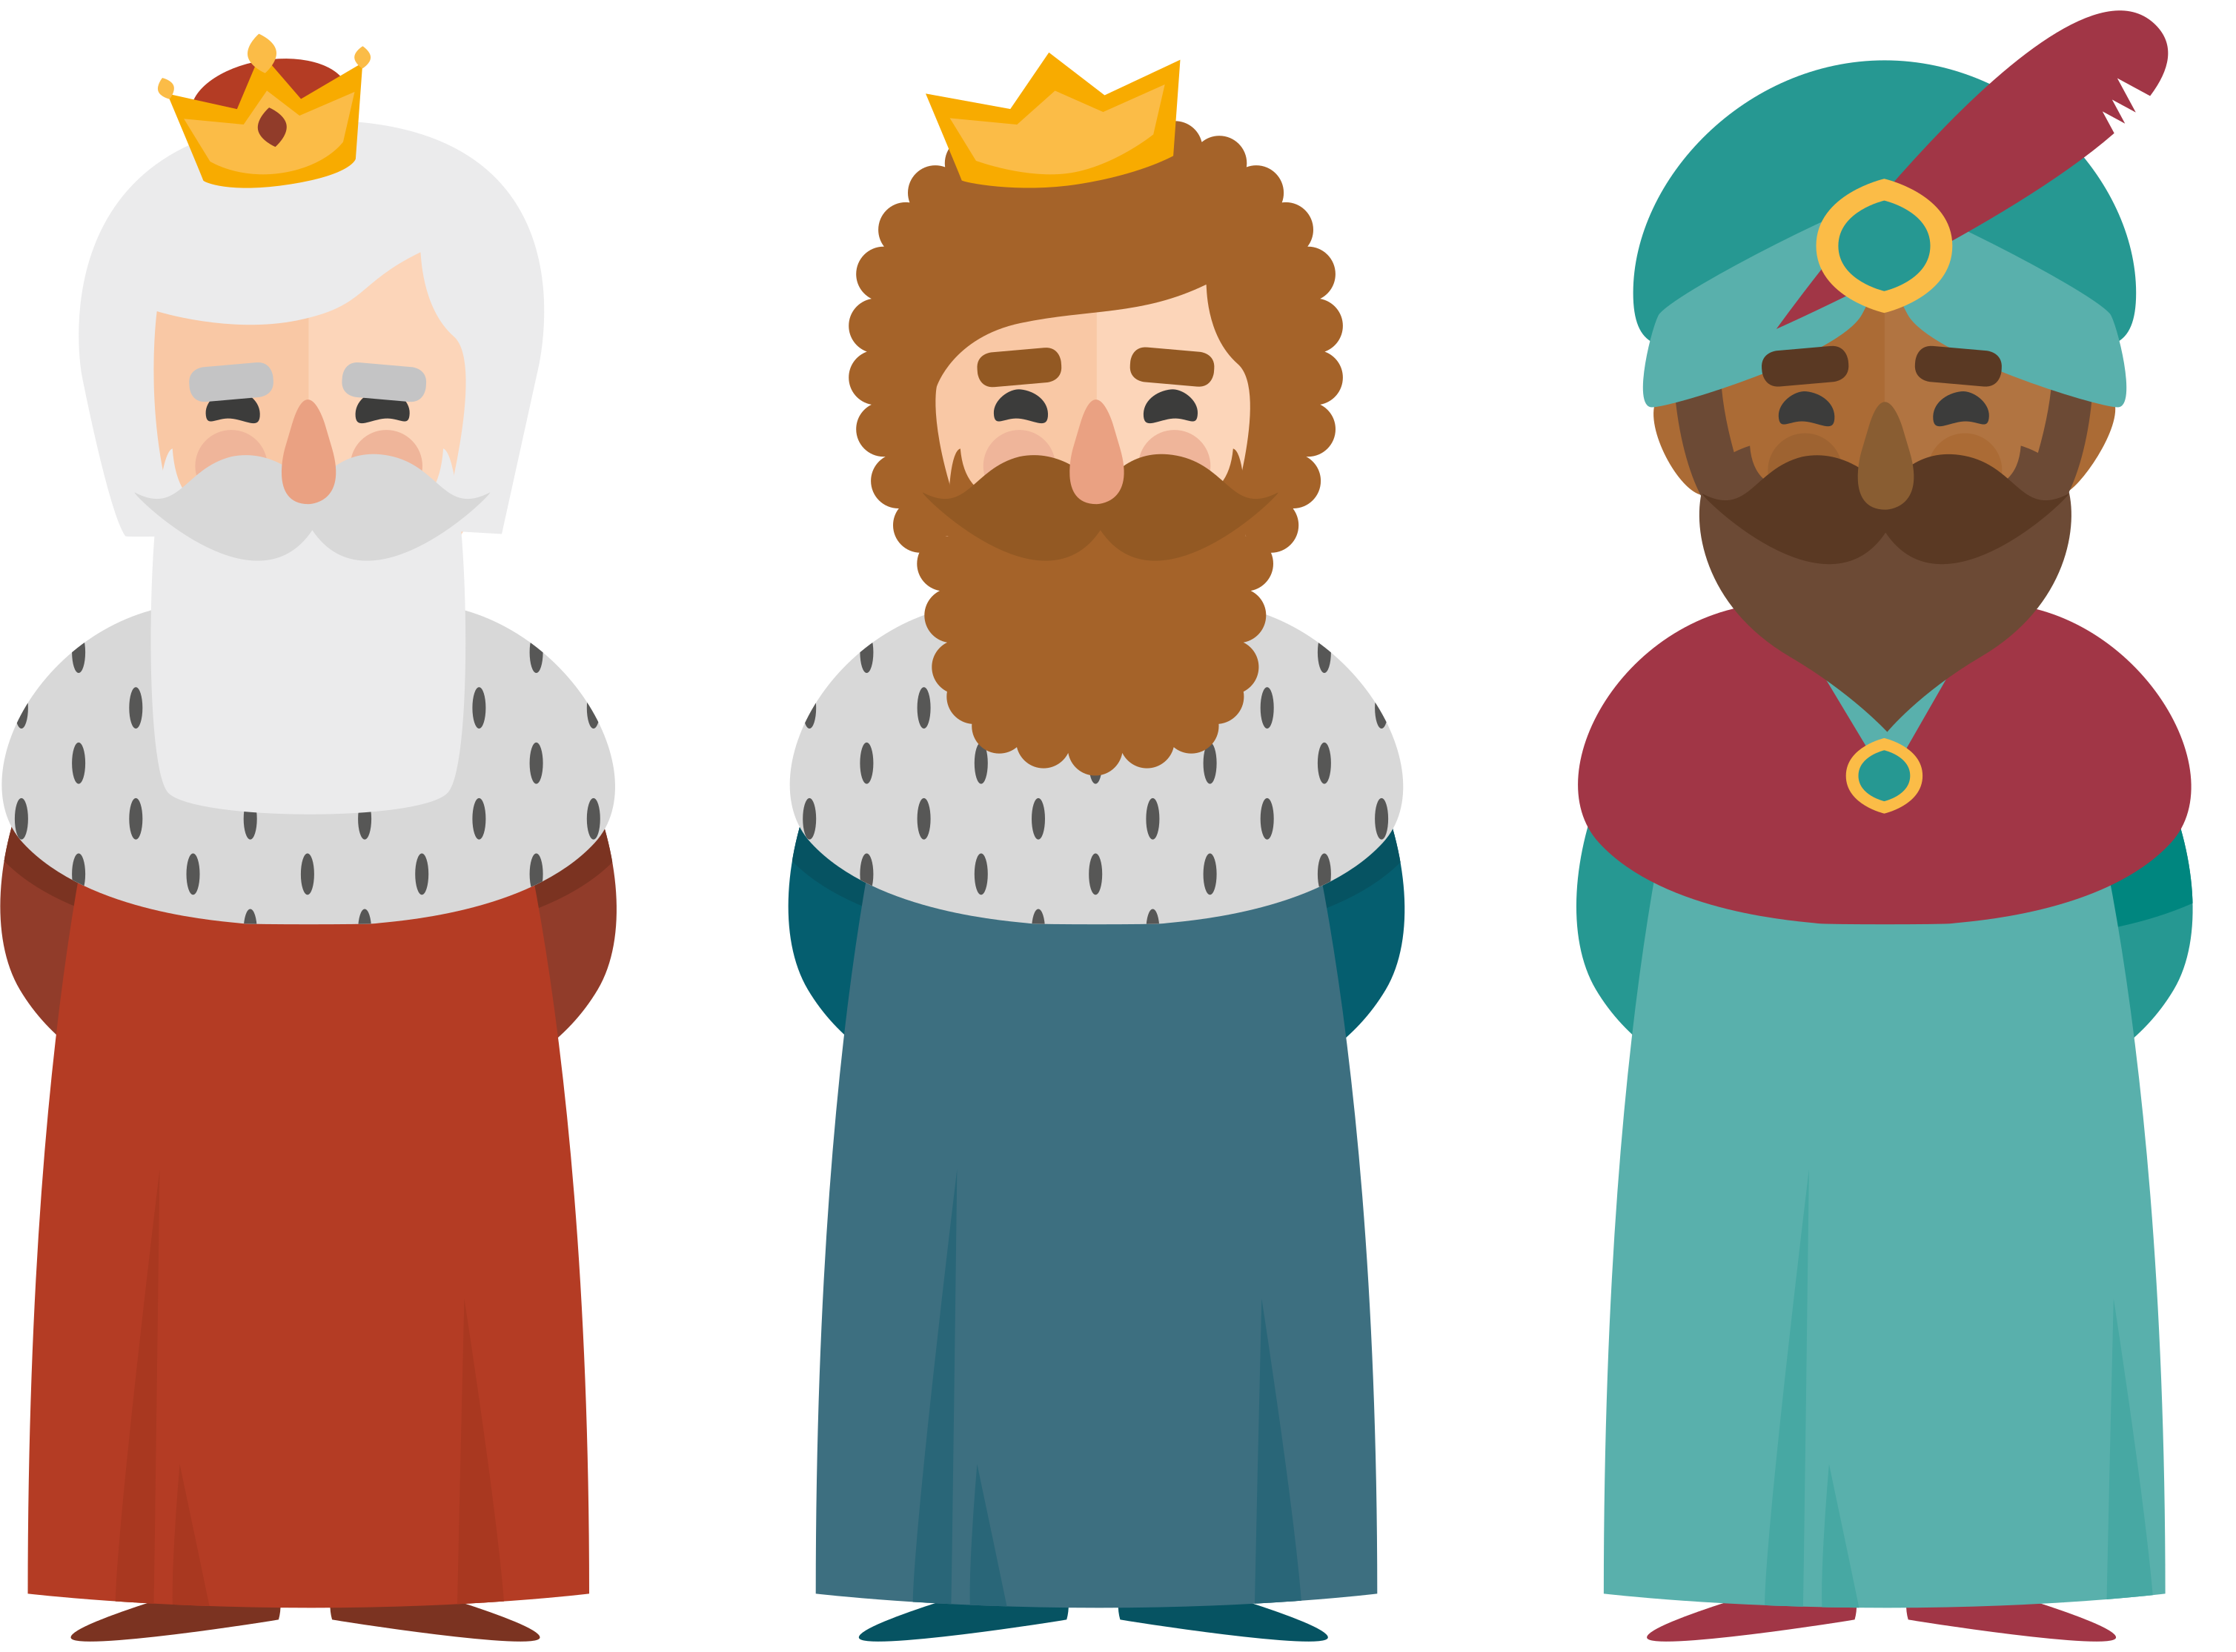 TenStickers. Three Kings christmas wall decal. Decorative Illustrative Christmas sticker design of the three wise men who trace the star direction to visit Jesus when he was born.